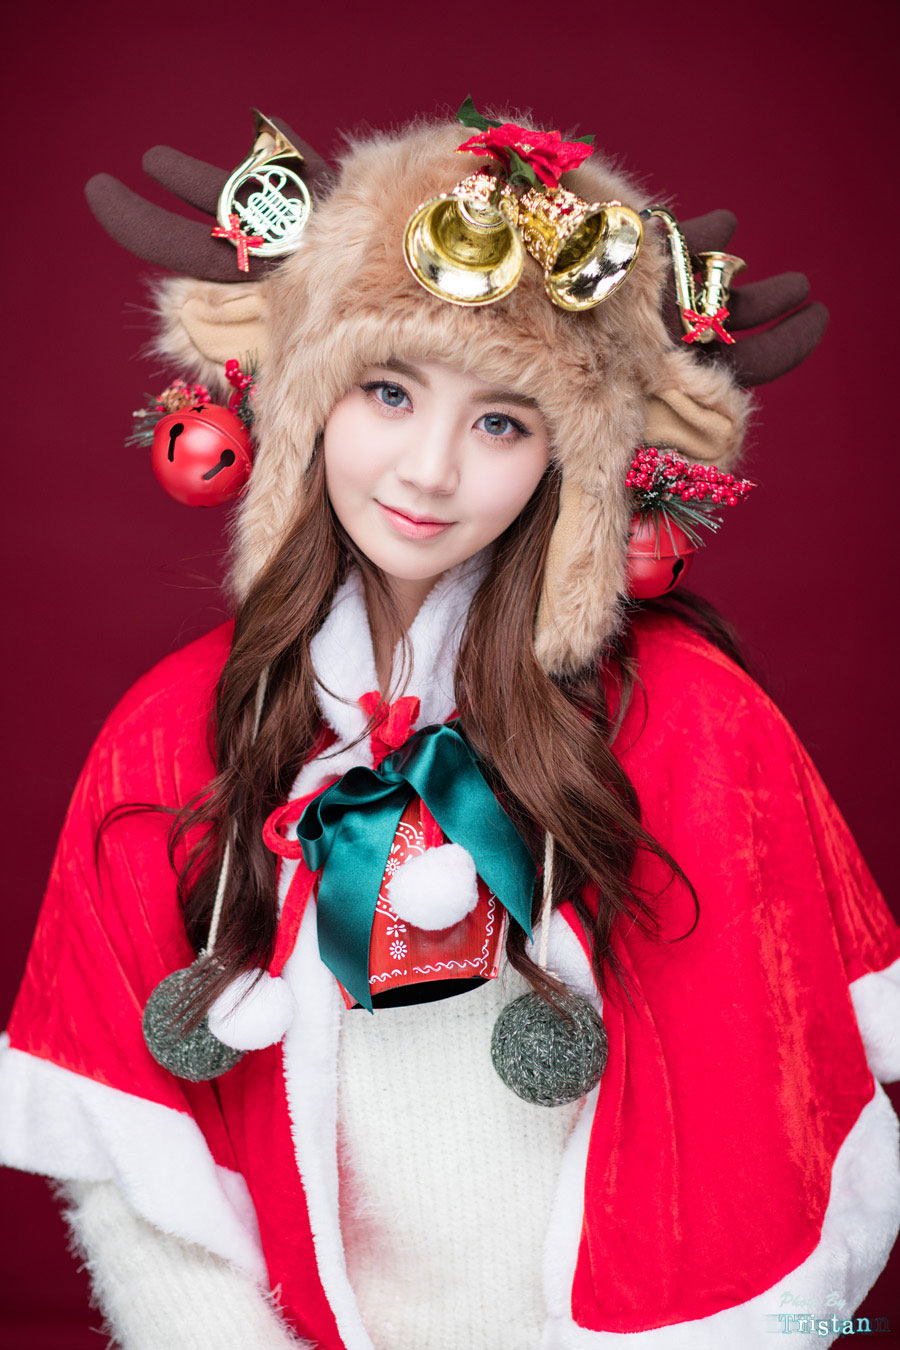 Korean model Chae Eun Christmas style